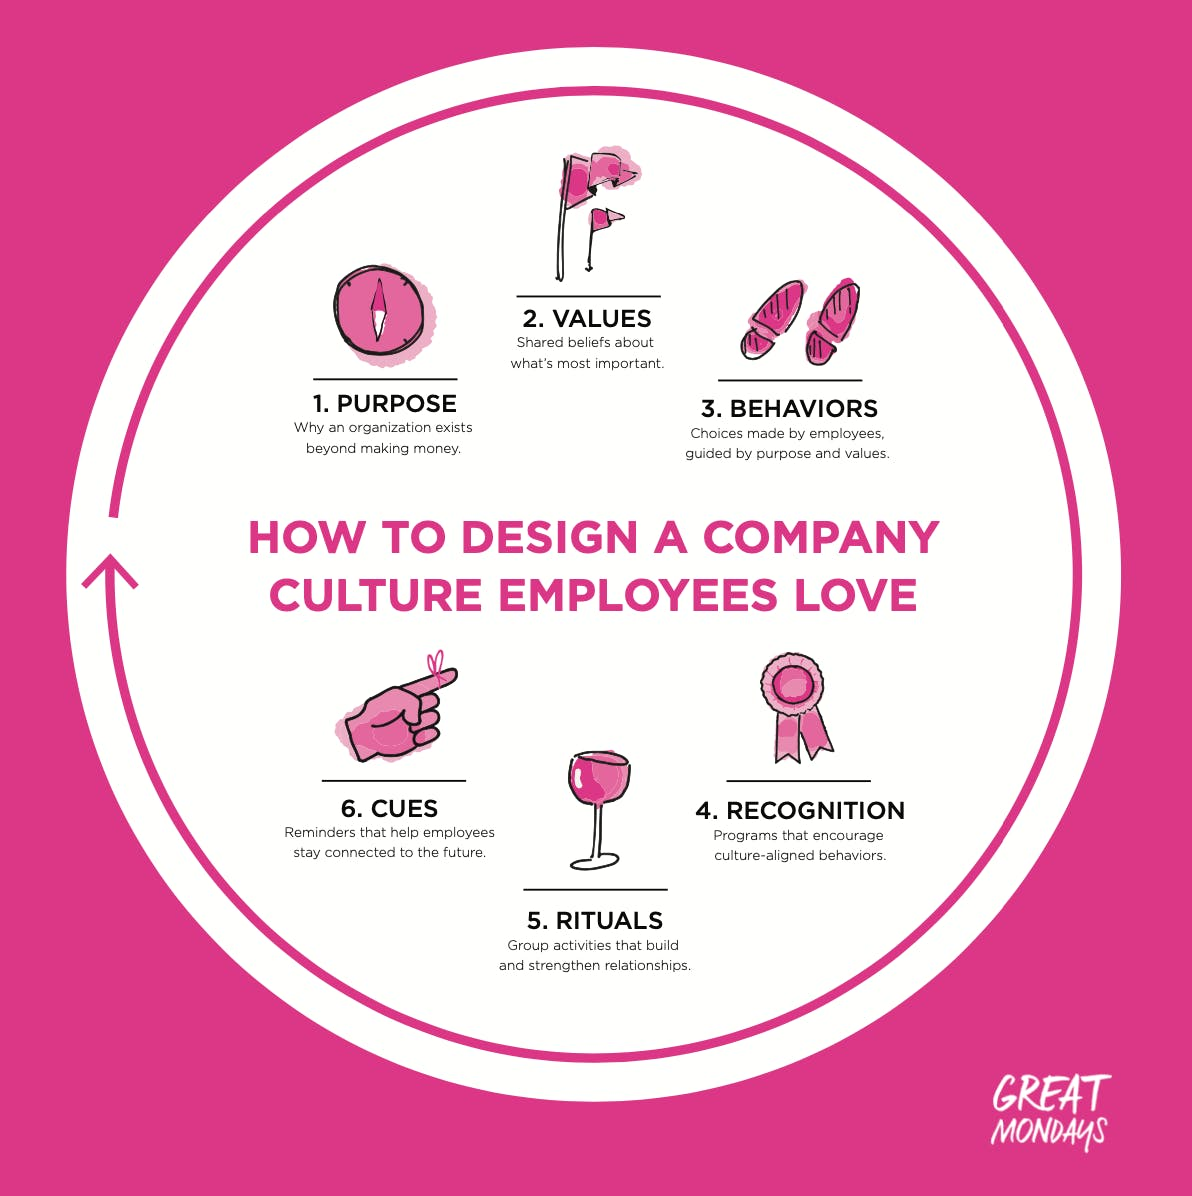 How to design a company culture employees love